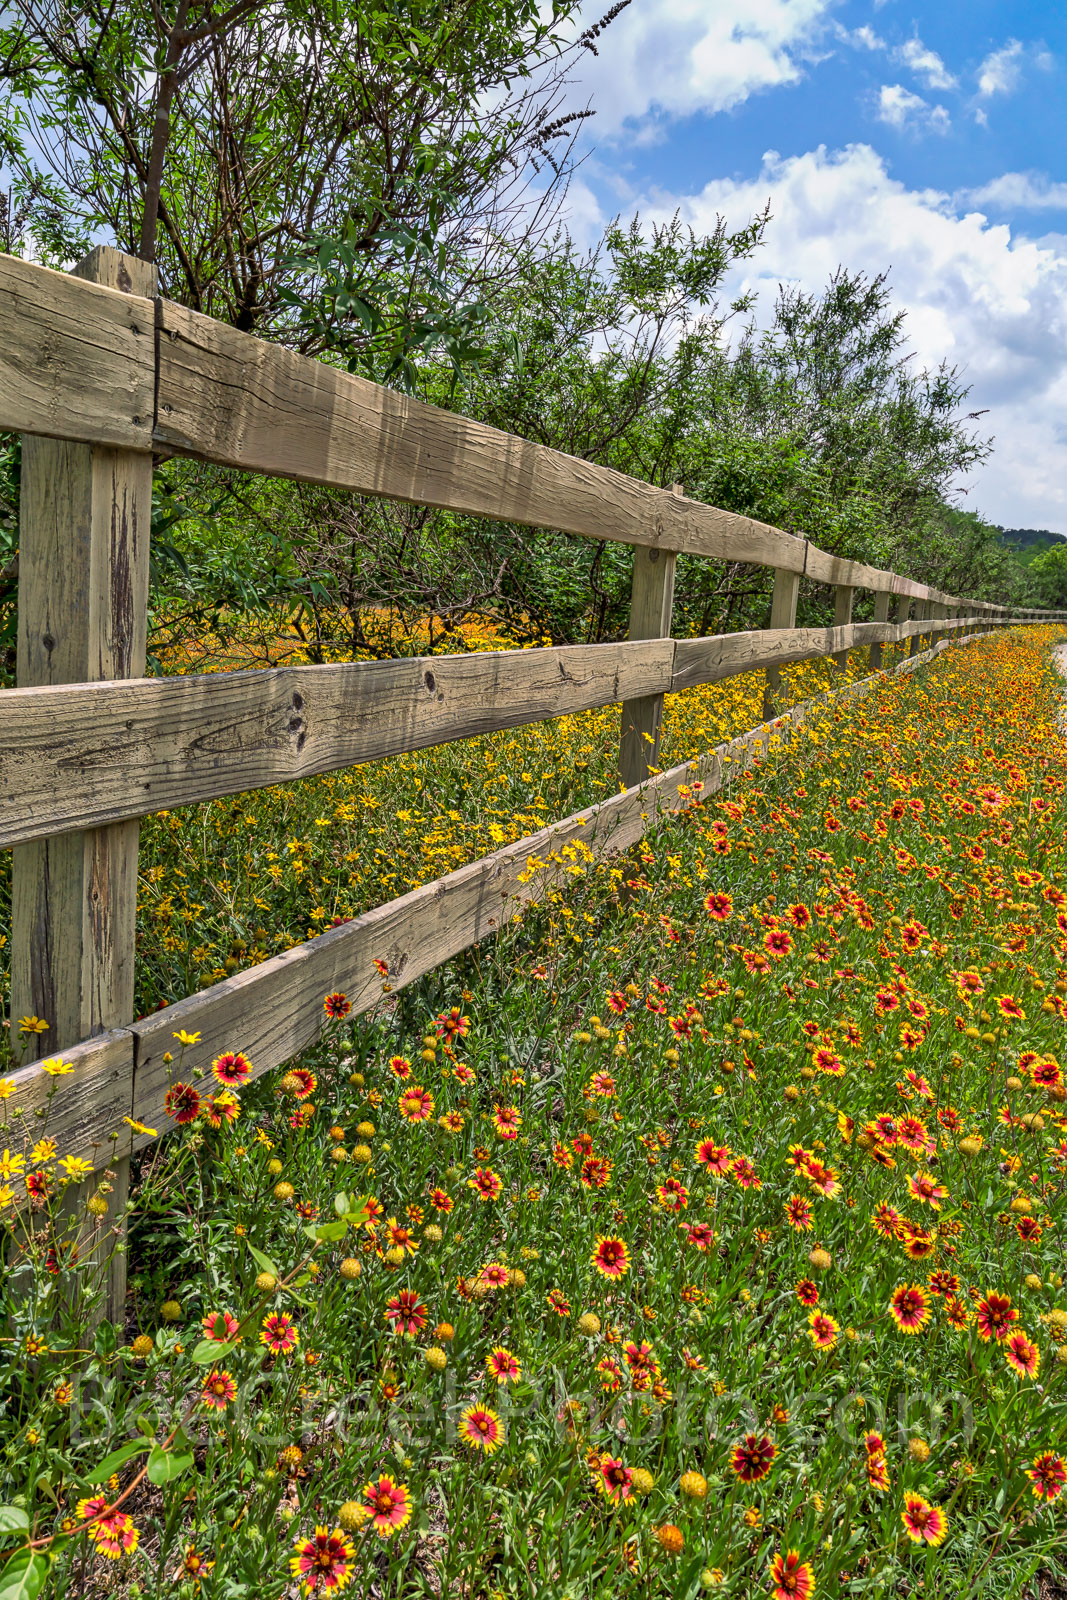 Texas, wildflowers, fence, indian blanket, firewheels, yellow, red, Damianta, Texas Hill country, back roads, summer, colorful, wooden fence, yellow flowers, spring, , photo